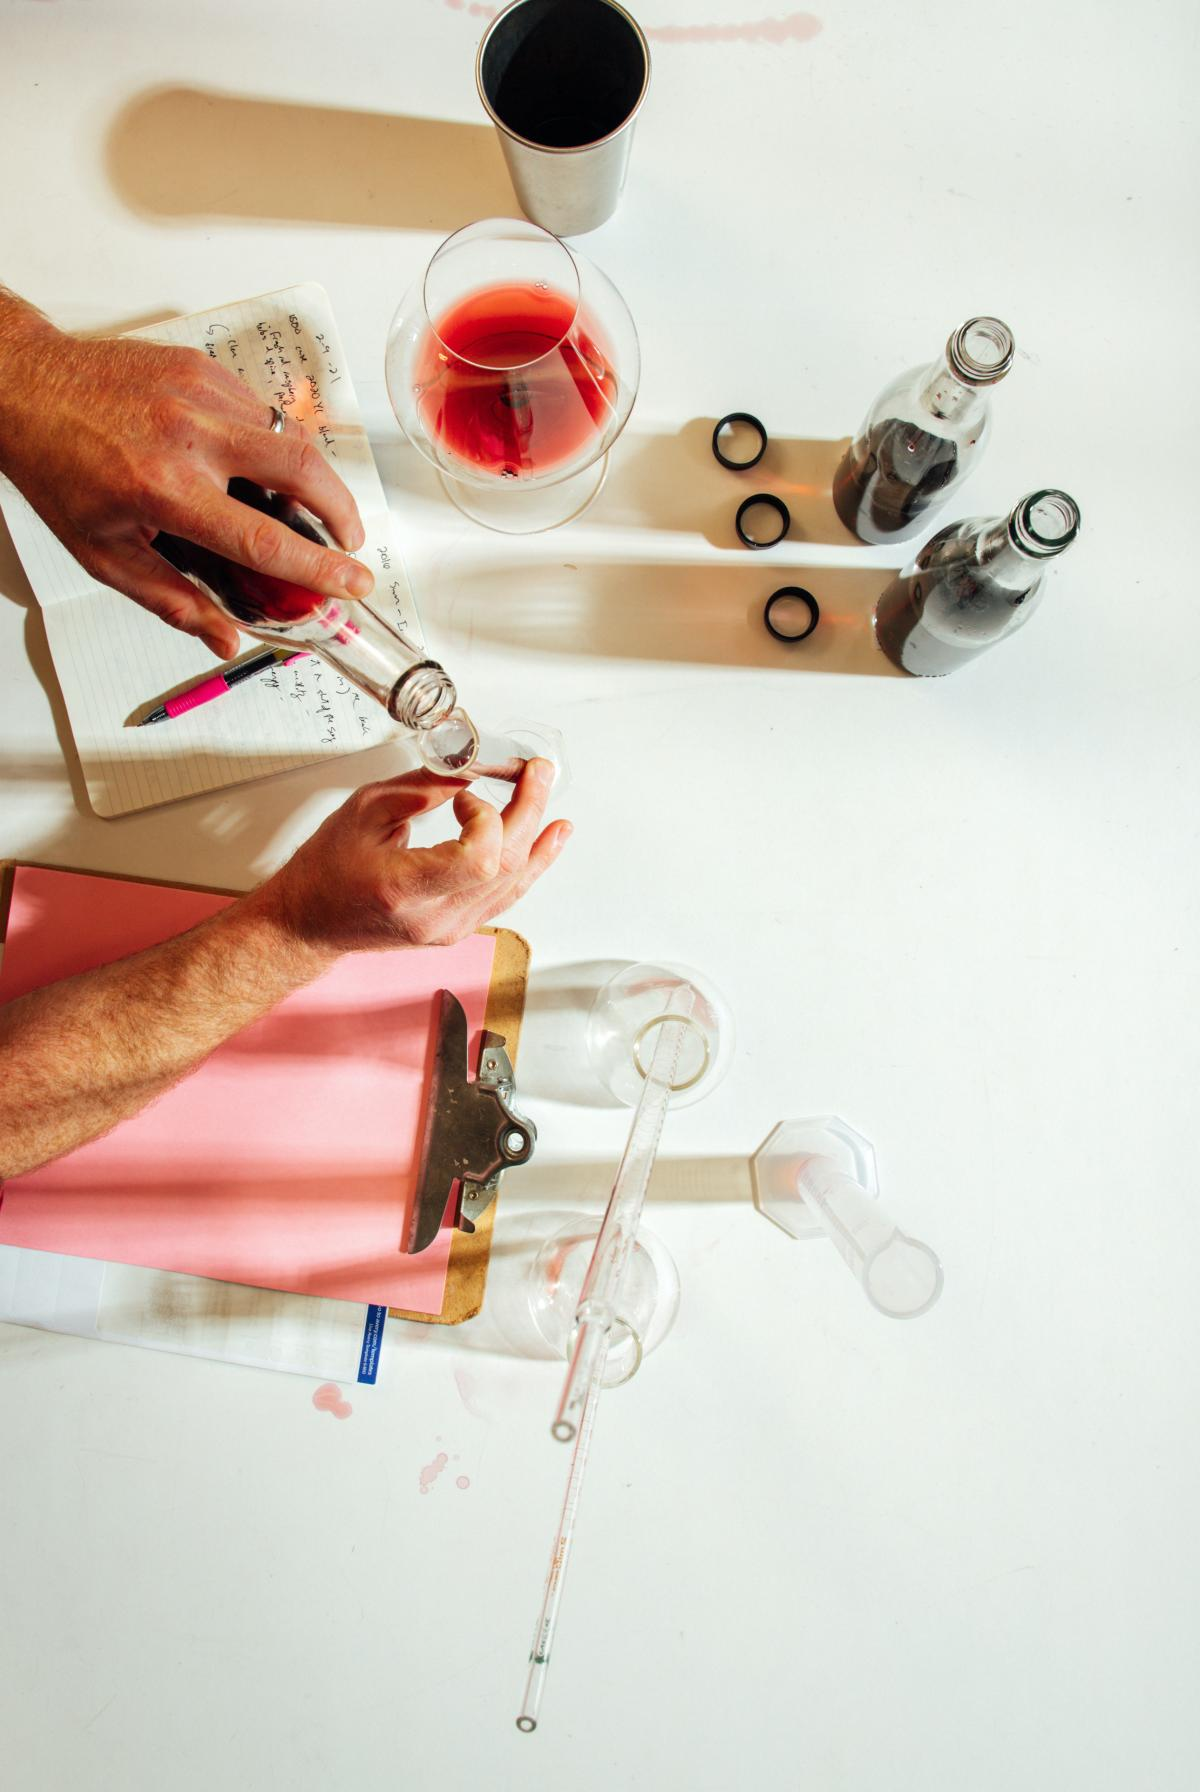 Overhead shot of a person blending wine in a lab